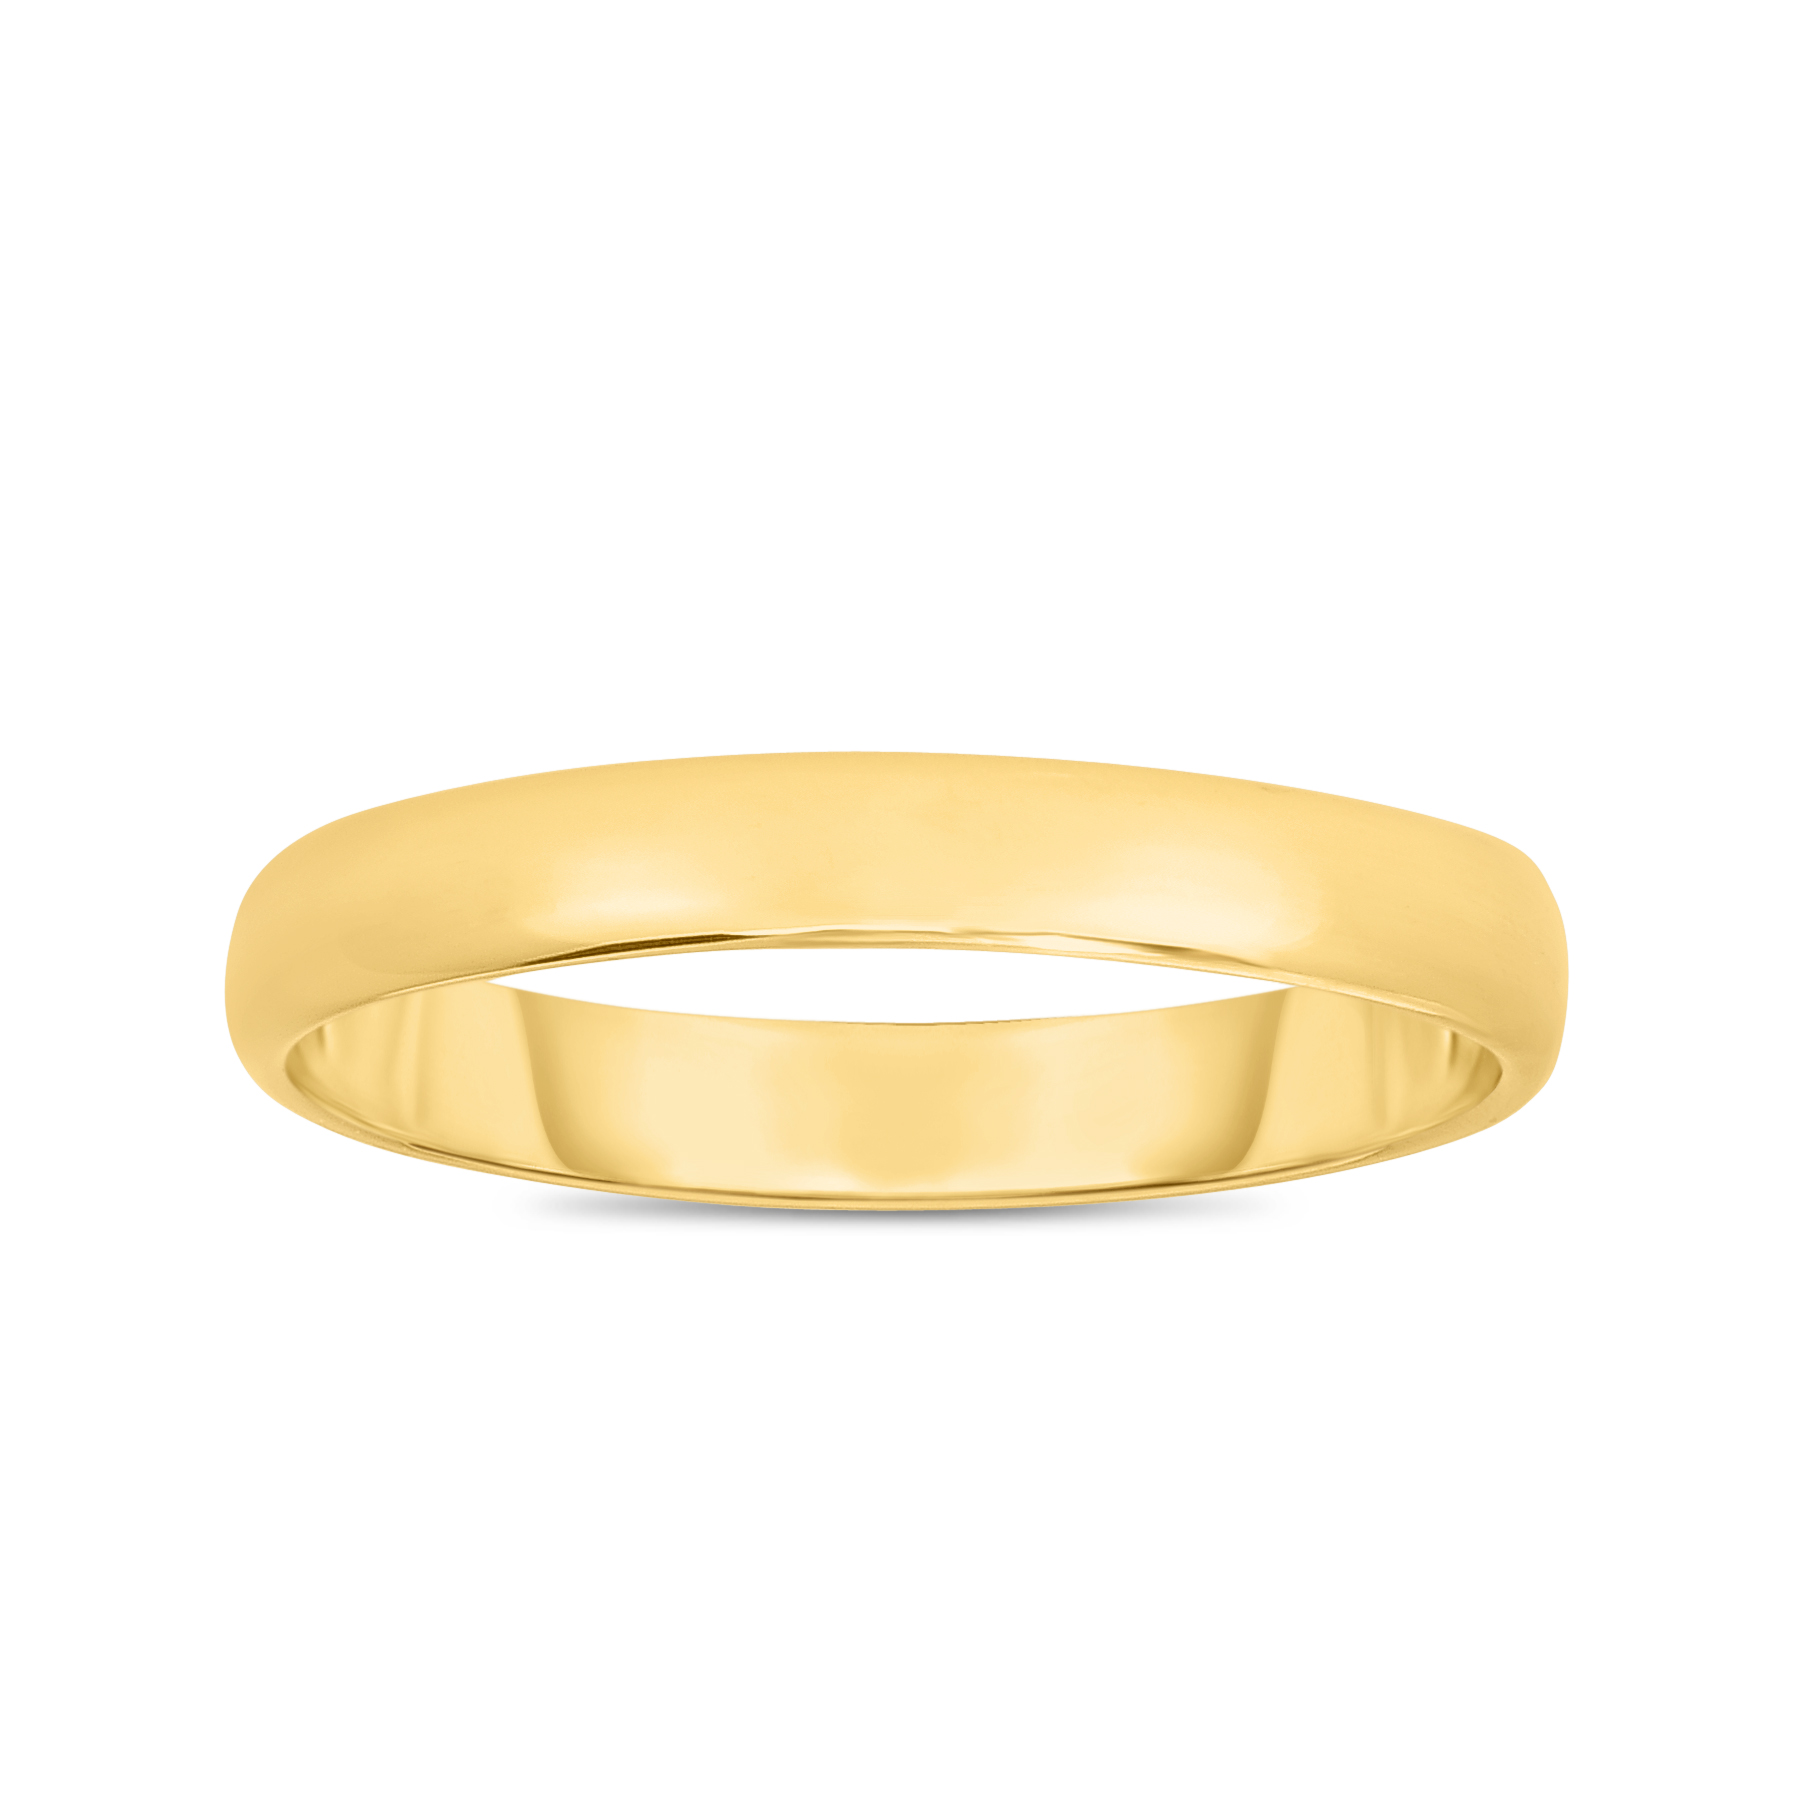 14K Yellow Gold Fashion Ring by Royal Chain